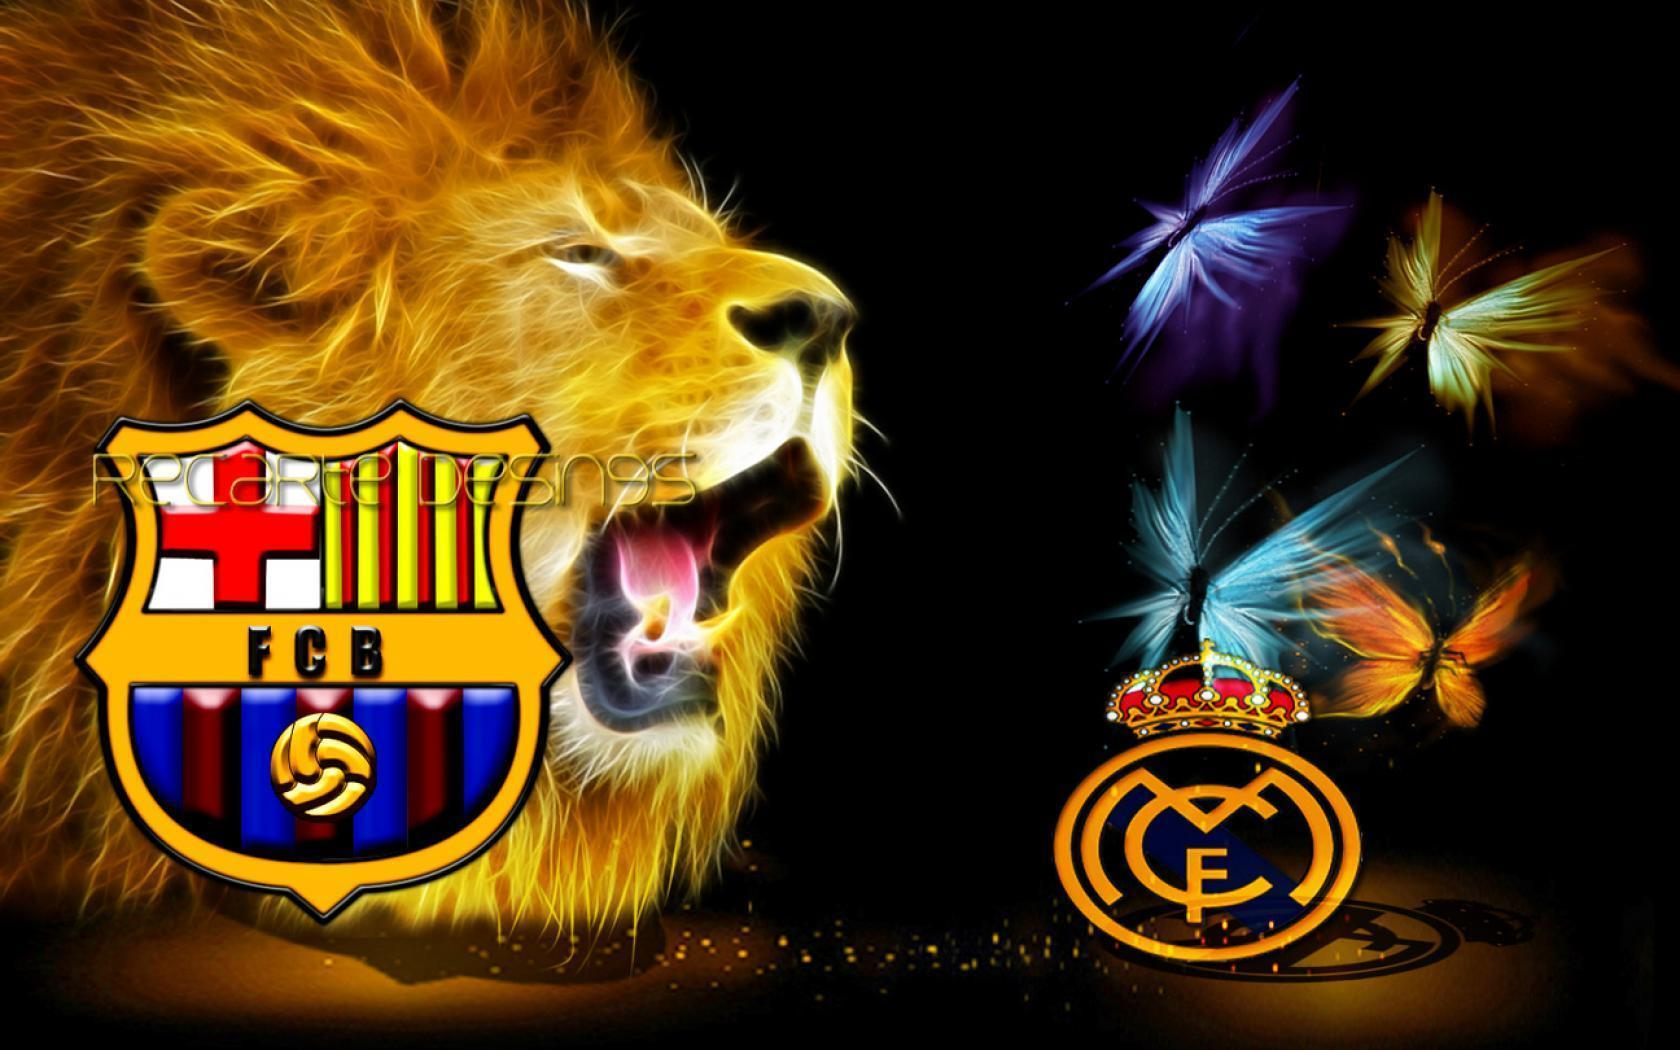 2012 The King Barcelona vs the queen Real Madrid 1680x1050 For 19